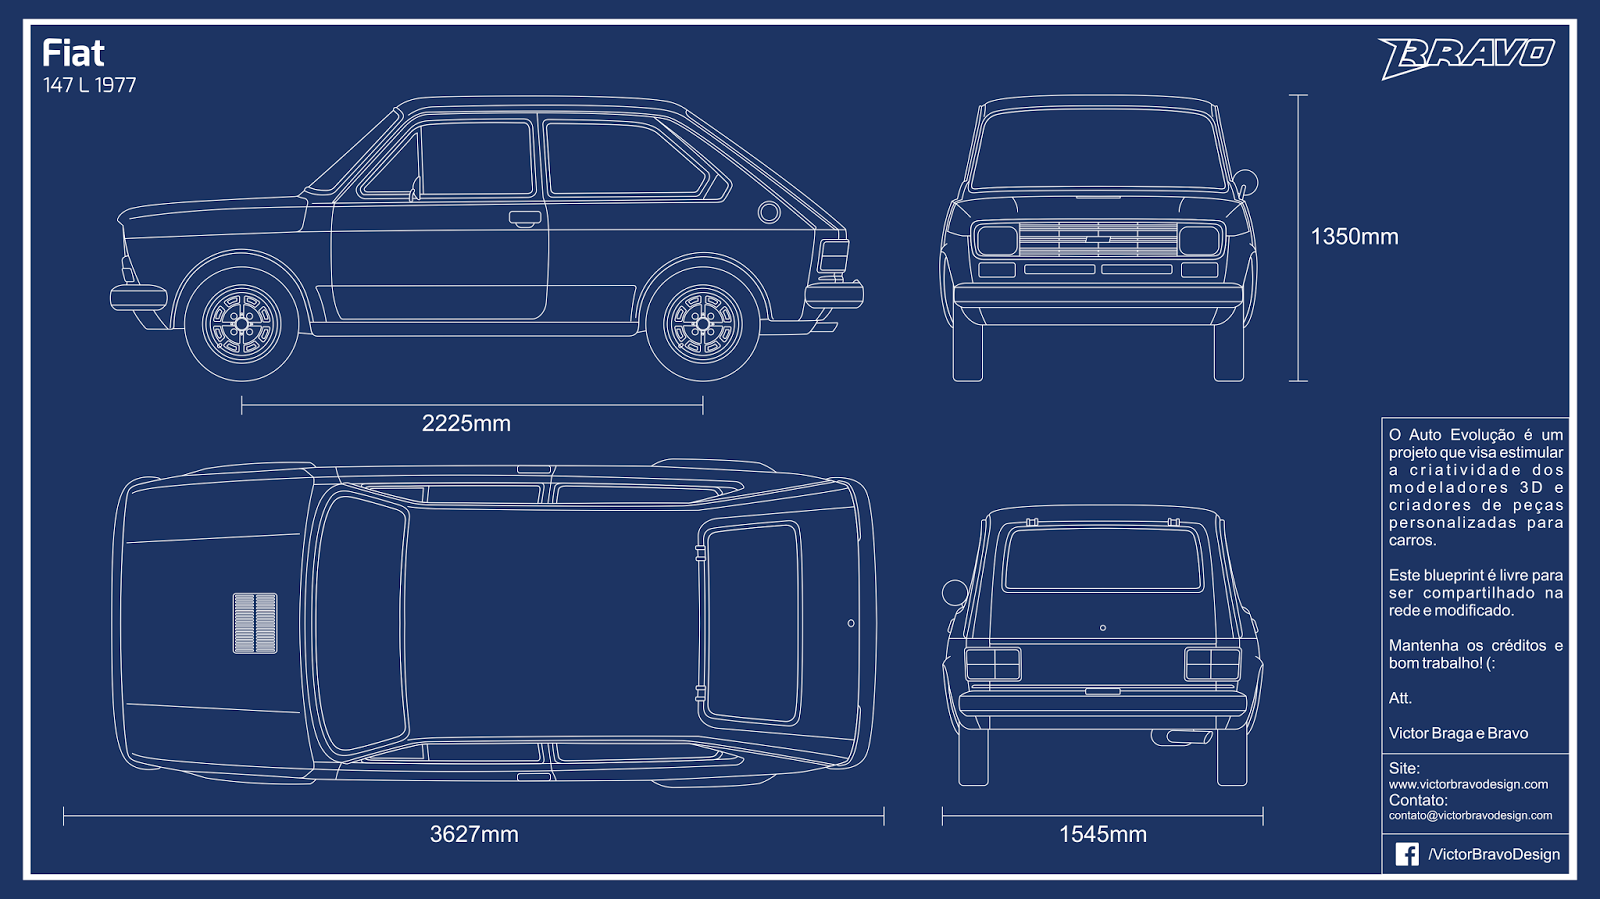 Imagem do blueprint do Fiat 147 L 1977